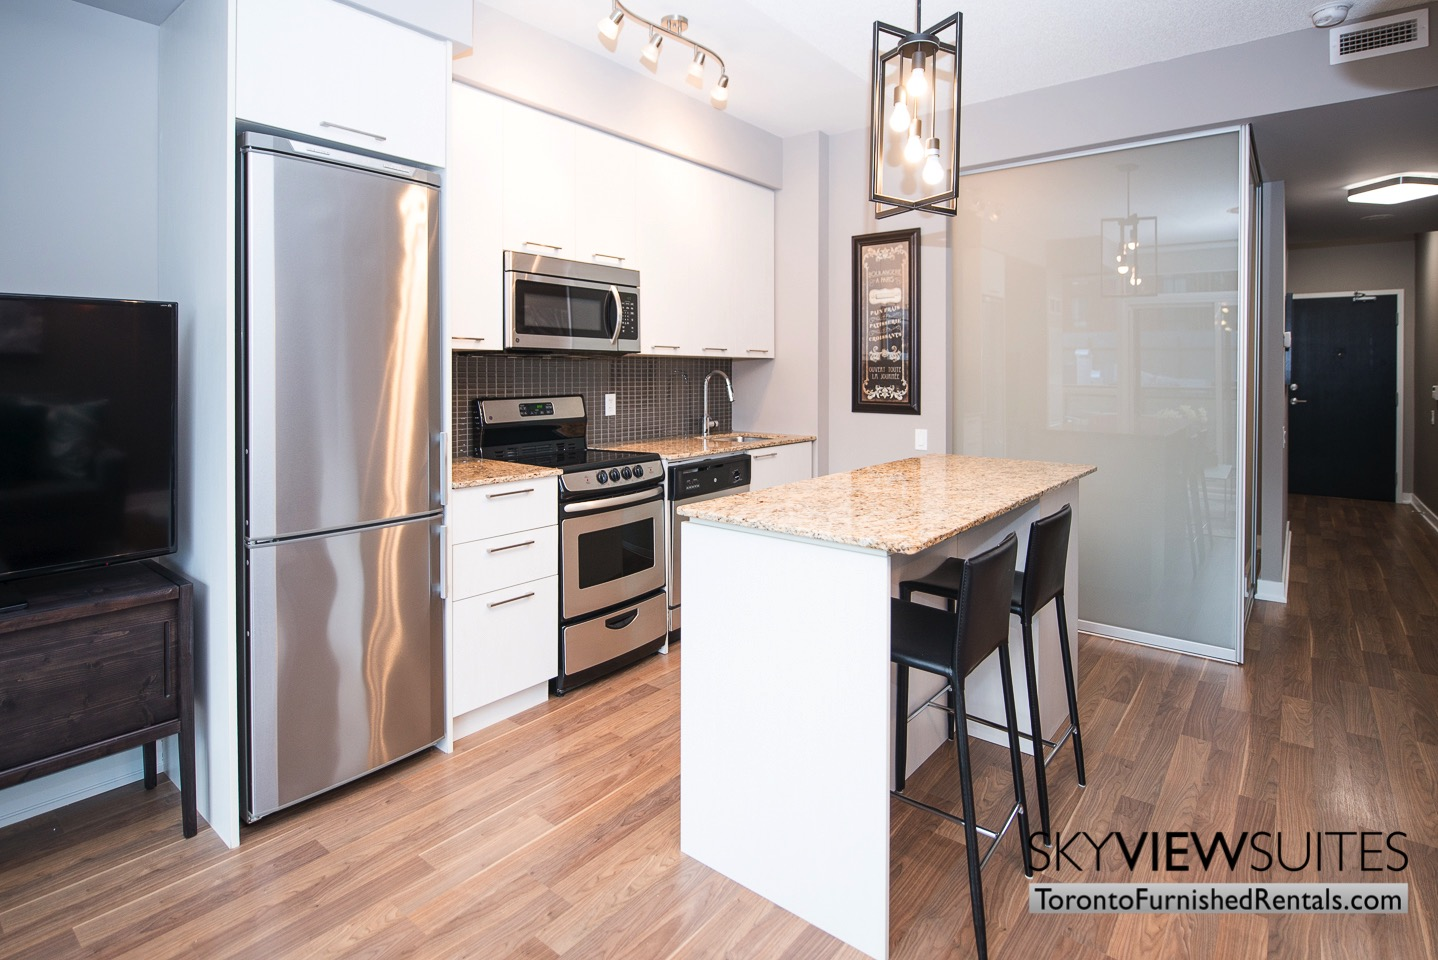 furnished-apartments-kitchen-King-west